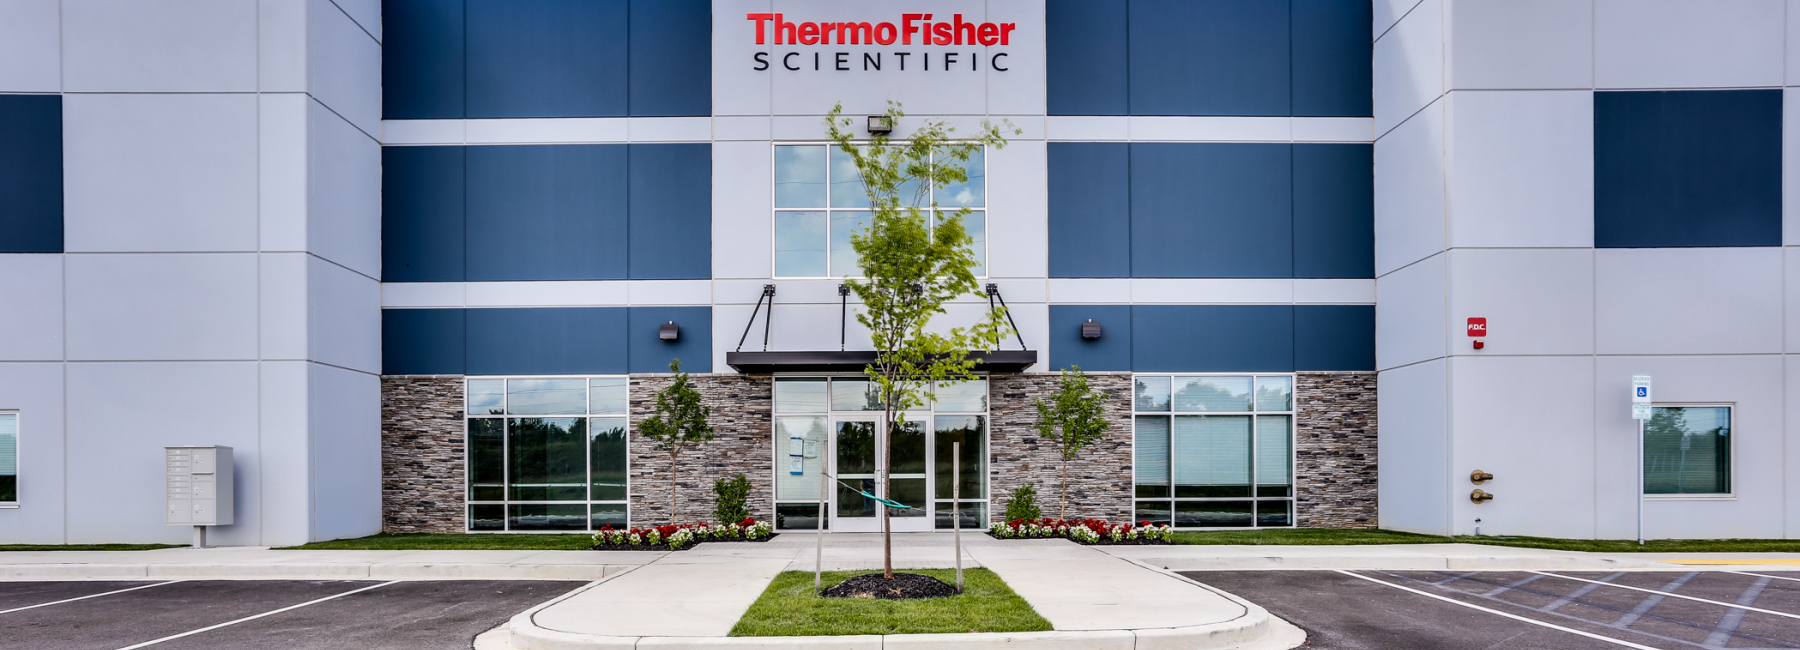 Thermo Fisher at Wedgewood West